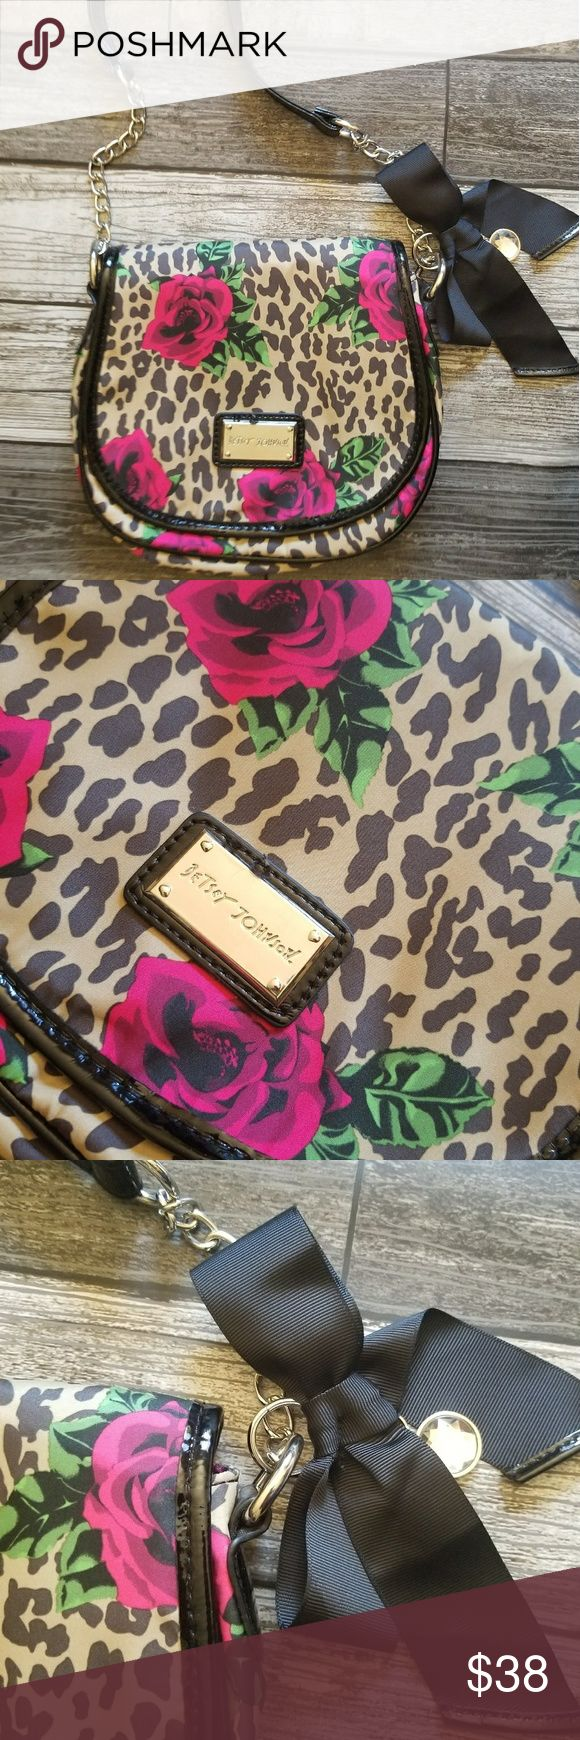 BETSEY JOHNSON leopard rose crossbody Leopard /cheetah with roses print flap crossbody. Lining is black patent faux leather. Strap is combo of chain and faux patent. Great condition Betsey Johnson Bags Crossbody Bags